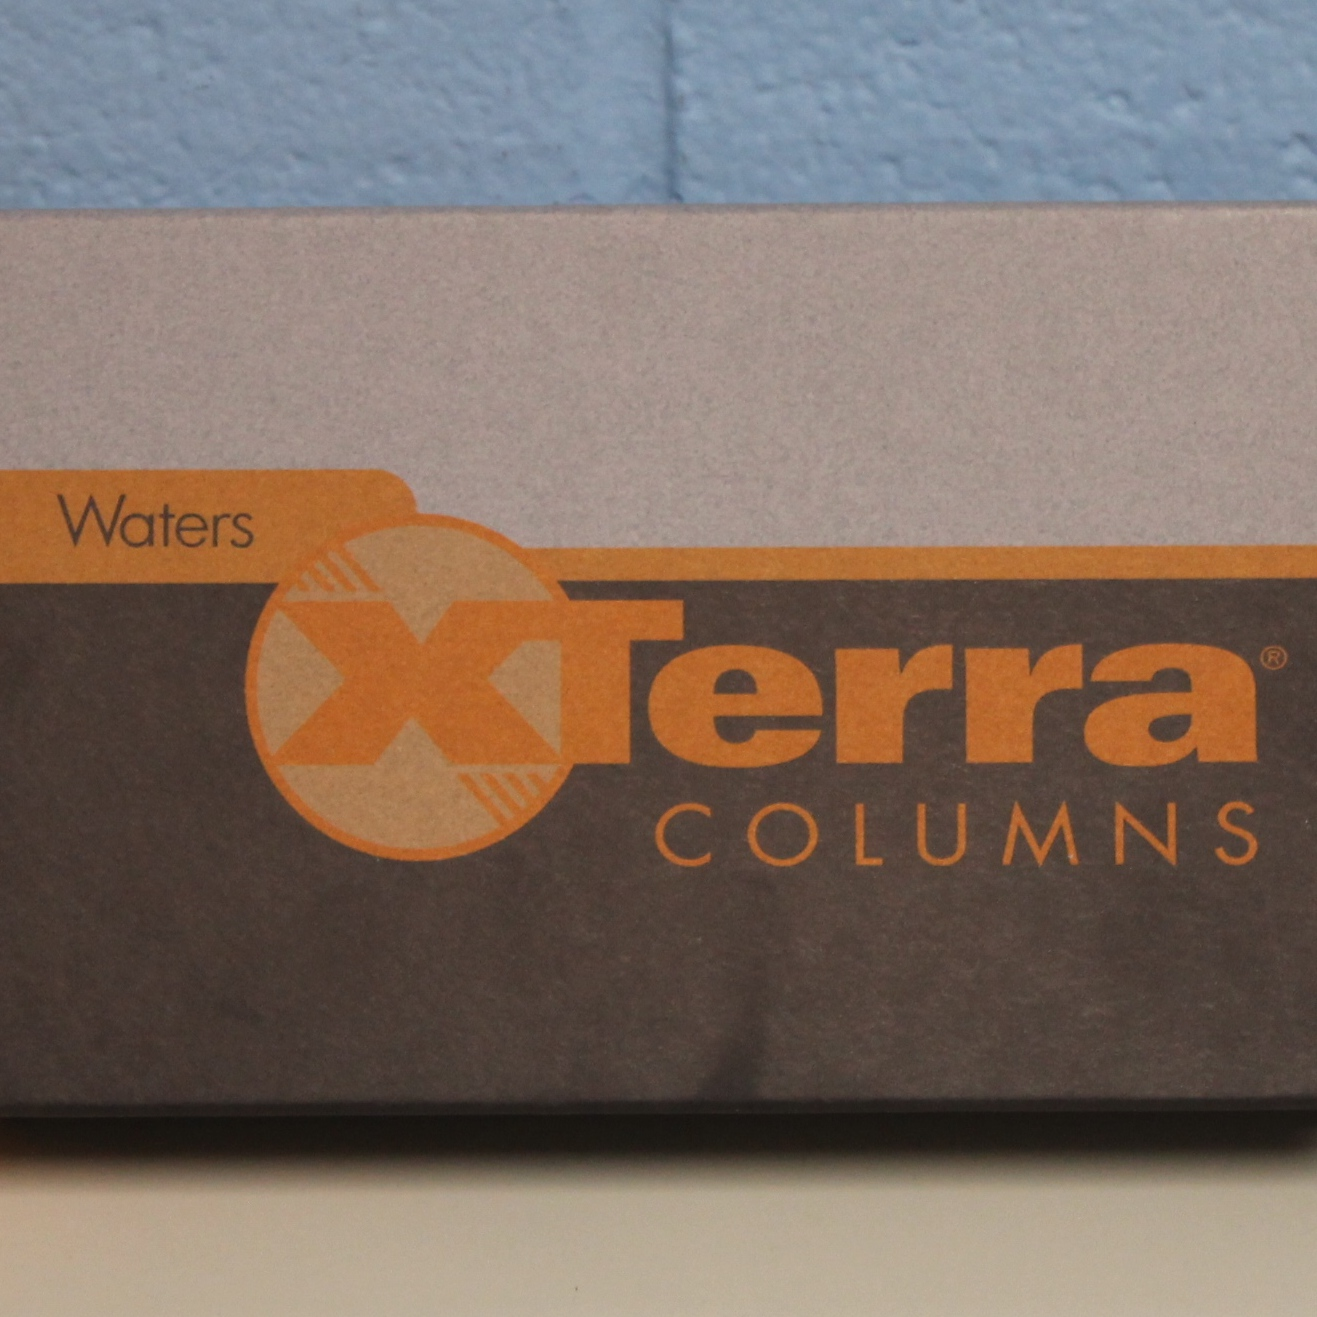 Xterra MS C18 10 m, 3.0 x 50mm HPLC Column P/N 888000258 Name